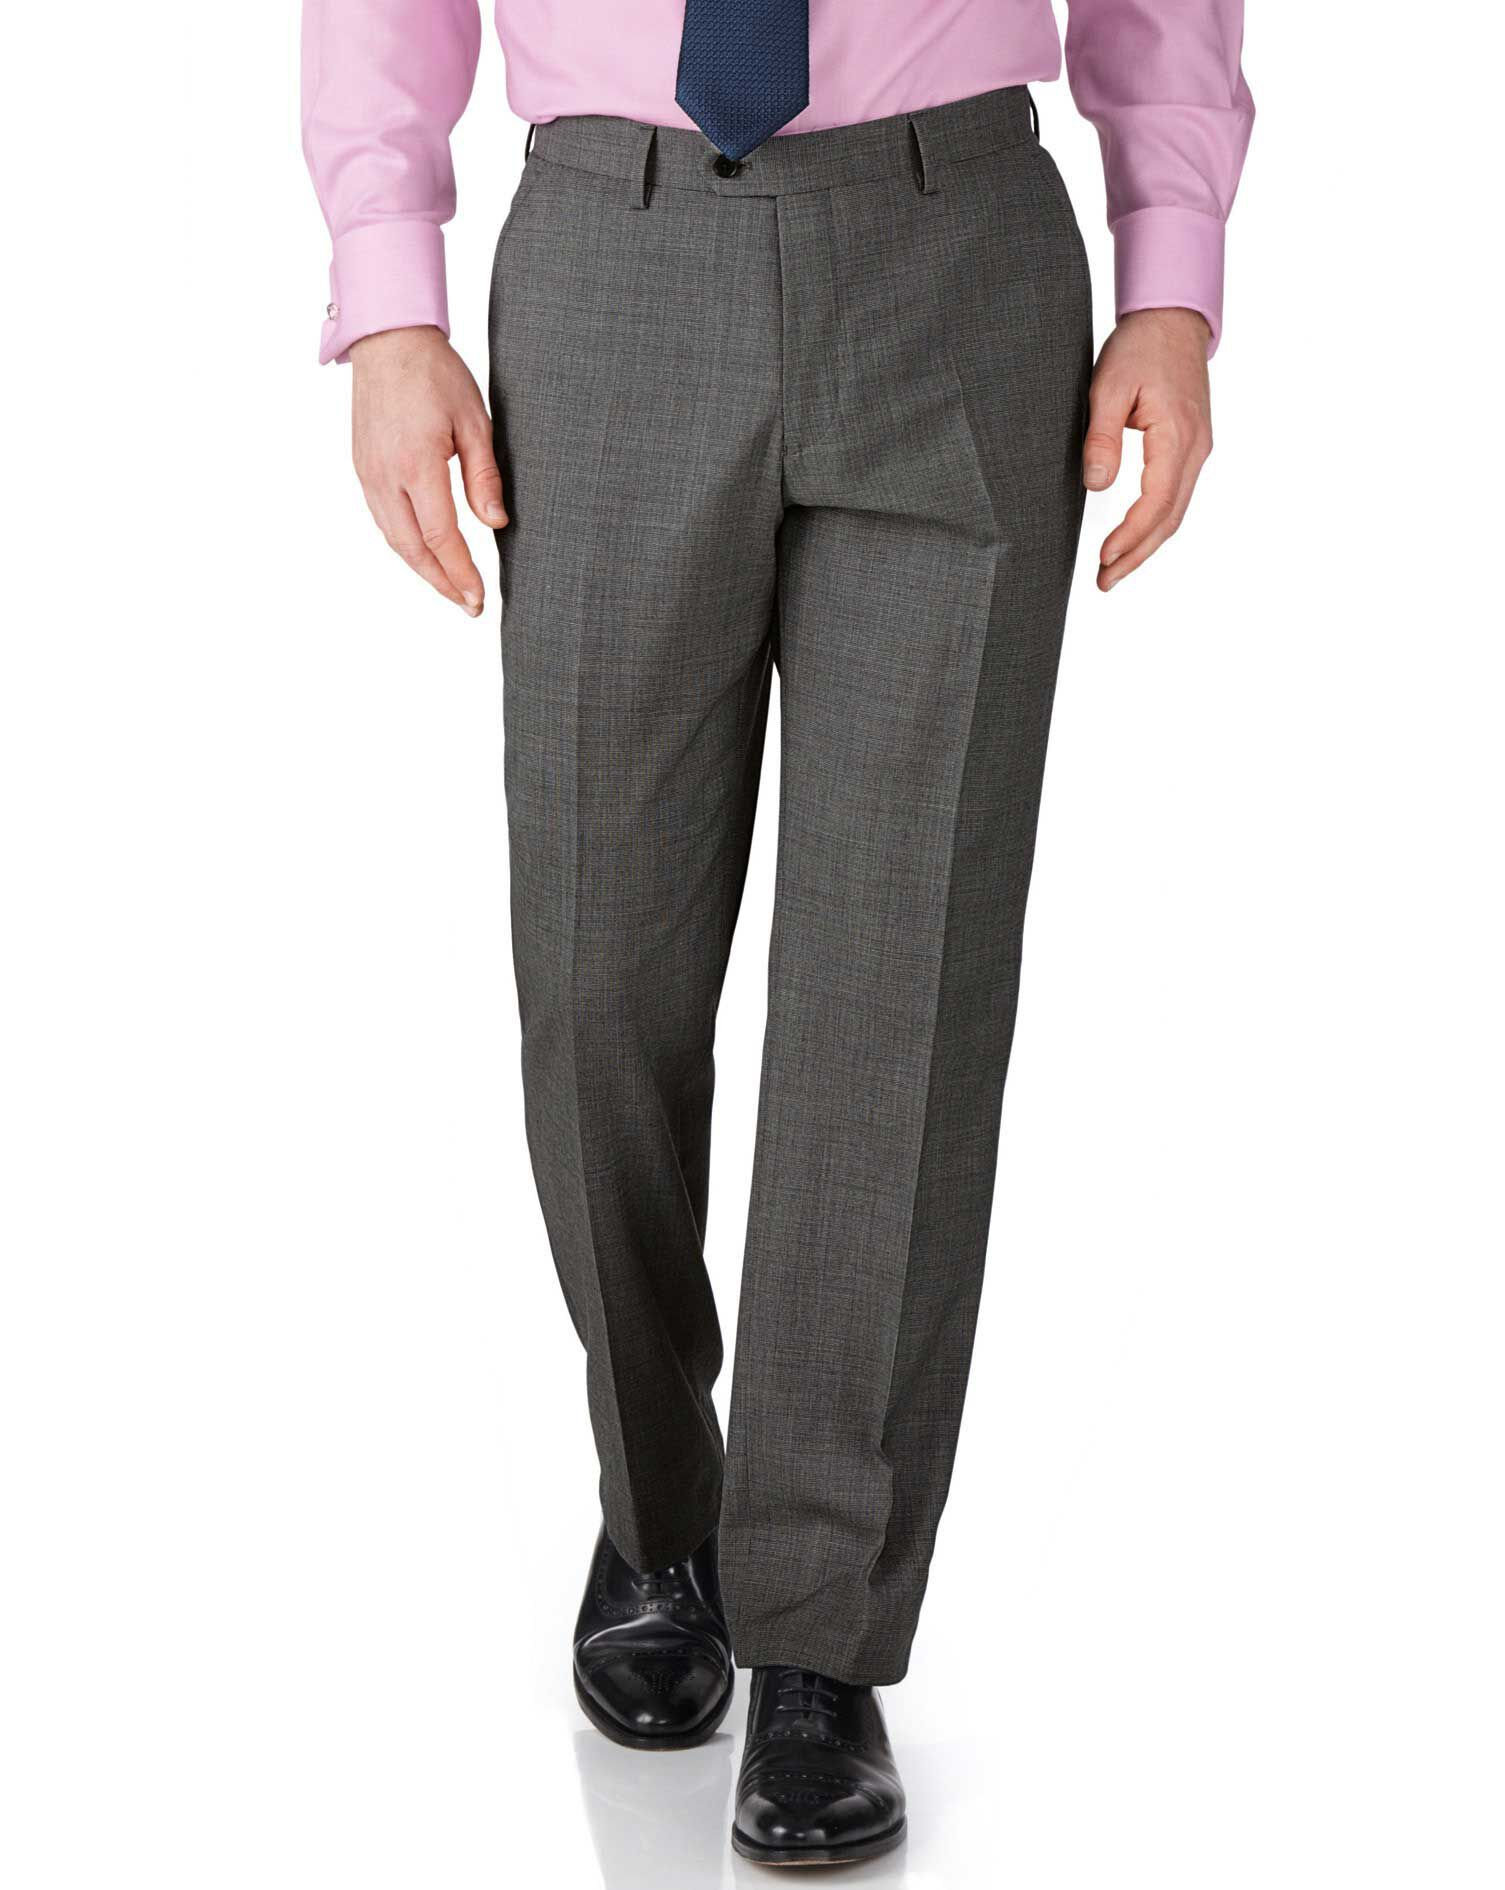 Grey Slim Fit End-On-End Business Suit Trousers Size W34 L32 by Charles Tyrwhitt